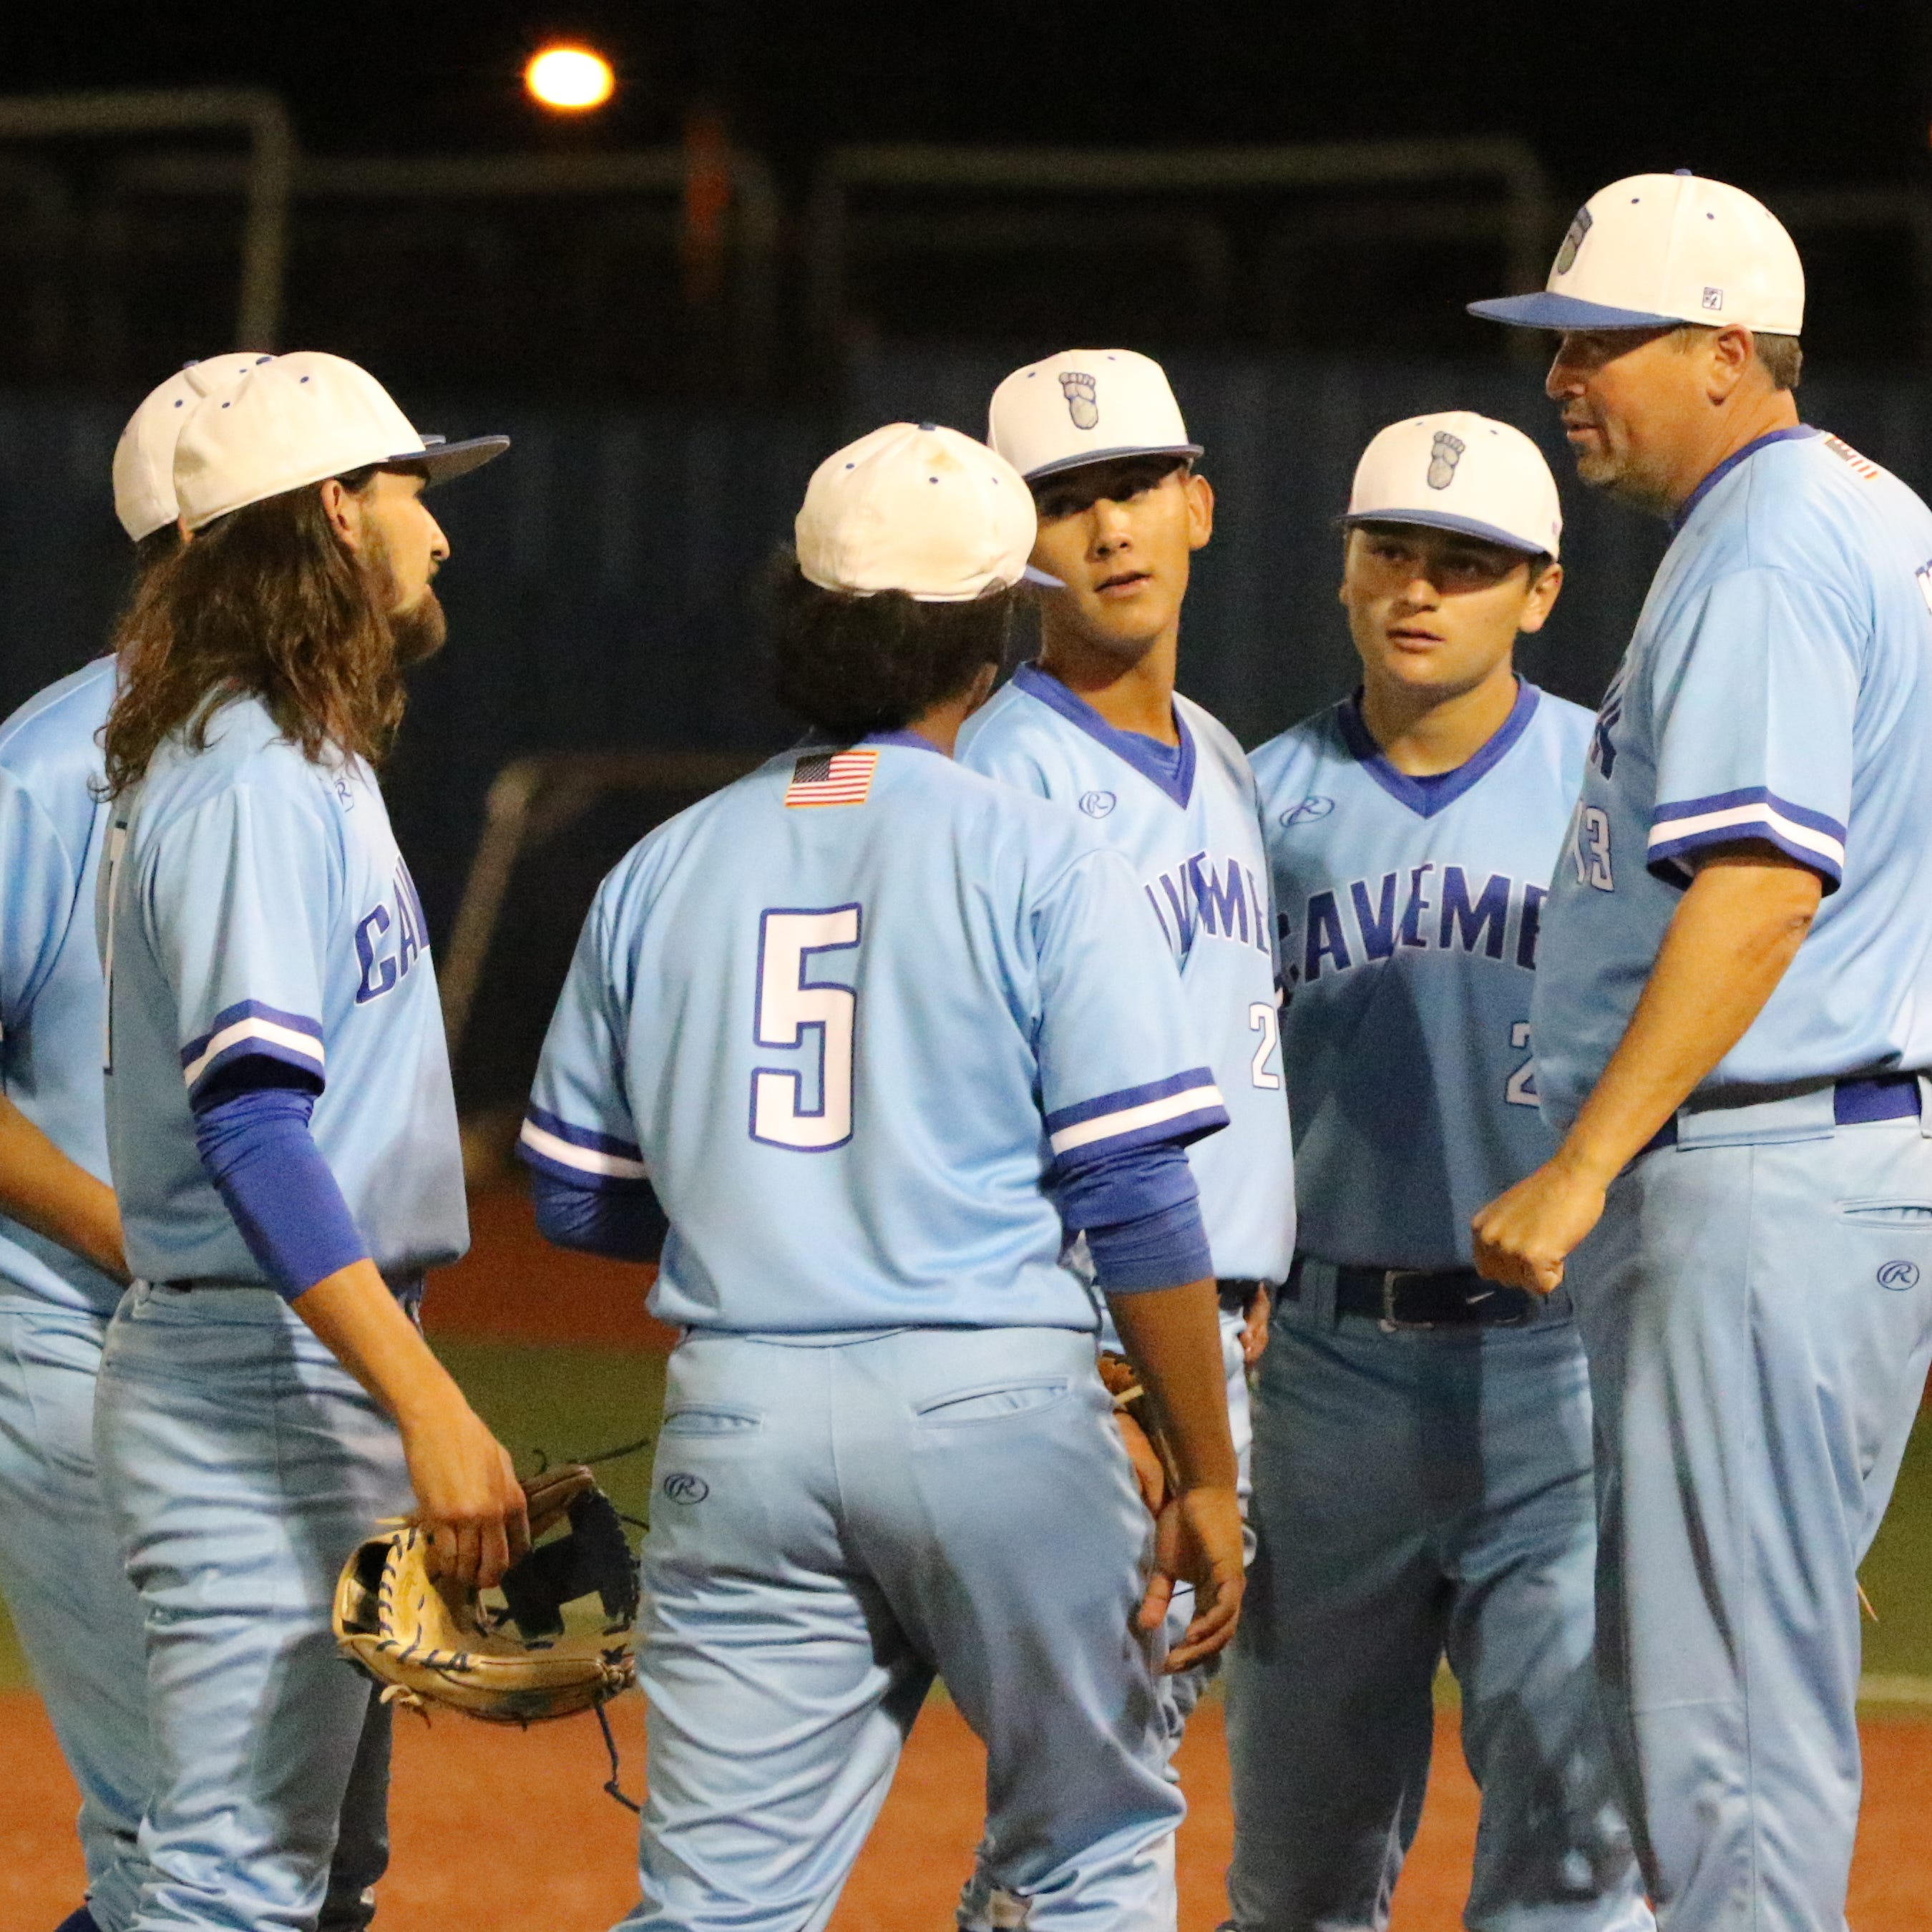 Devil's in the Details: Patience and pitching lead to Cavemen sweeping Clovis